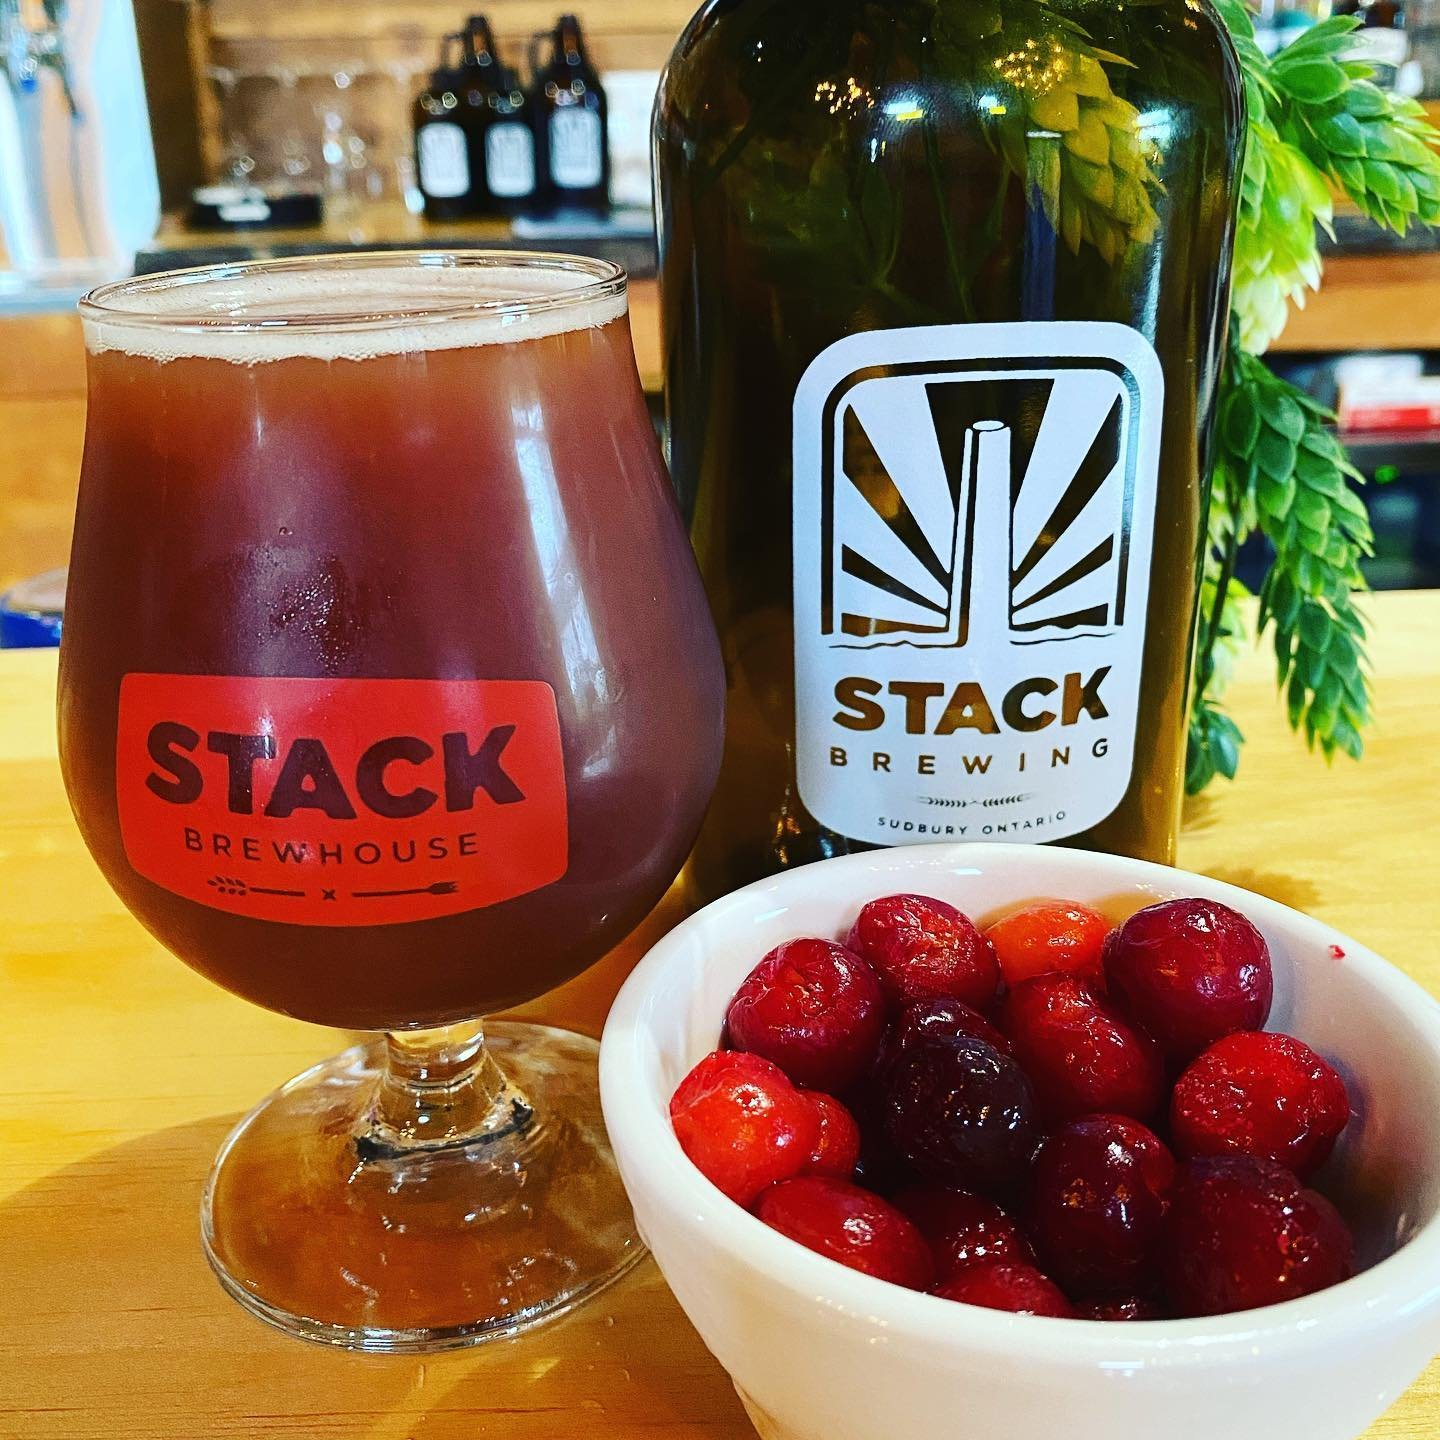 A glass of cranberry beer beside a tall bottle of beer with a small bowl of cranberries